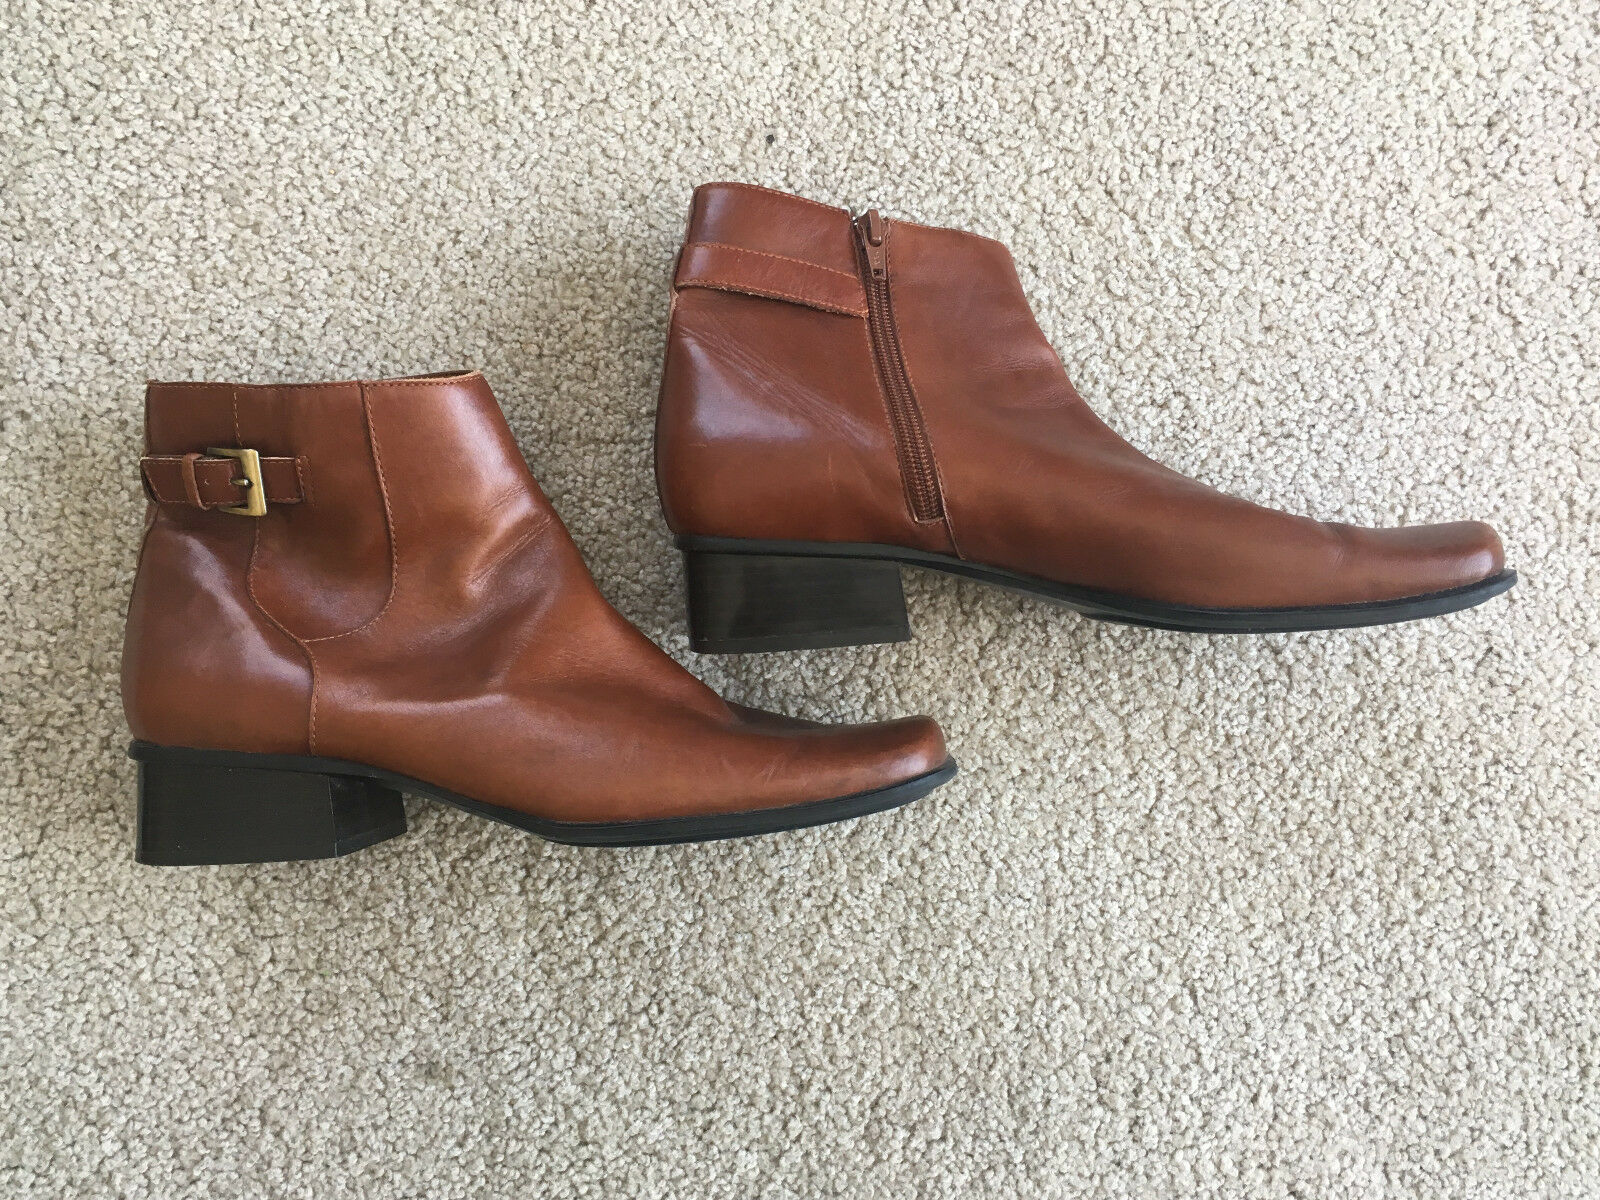 """Village """"Marinette"""" Brown Leather Square Toe Ankle Boots 8.5M Wood Stacked HEEL"""